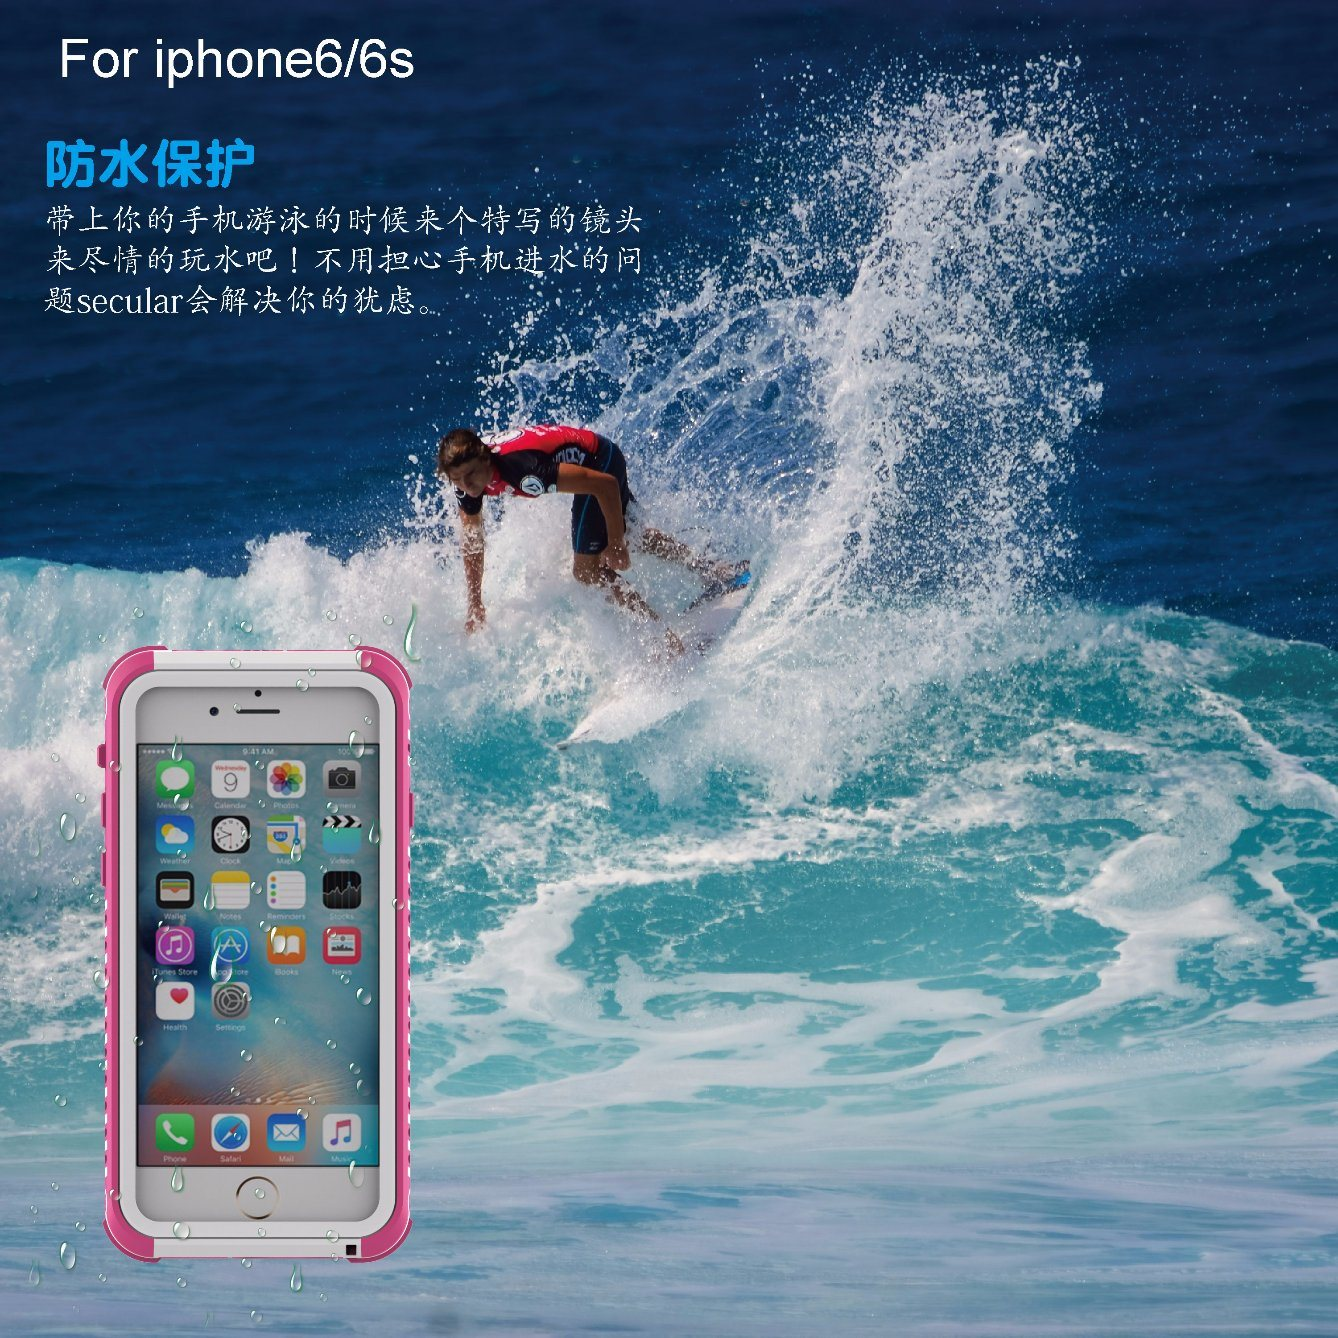 Two Ways to Use New Waterproof Mobile/Cell Phone Case for iPhone 6s